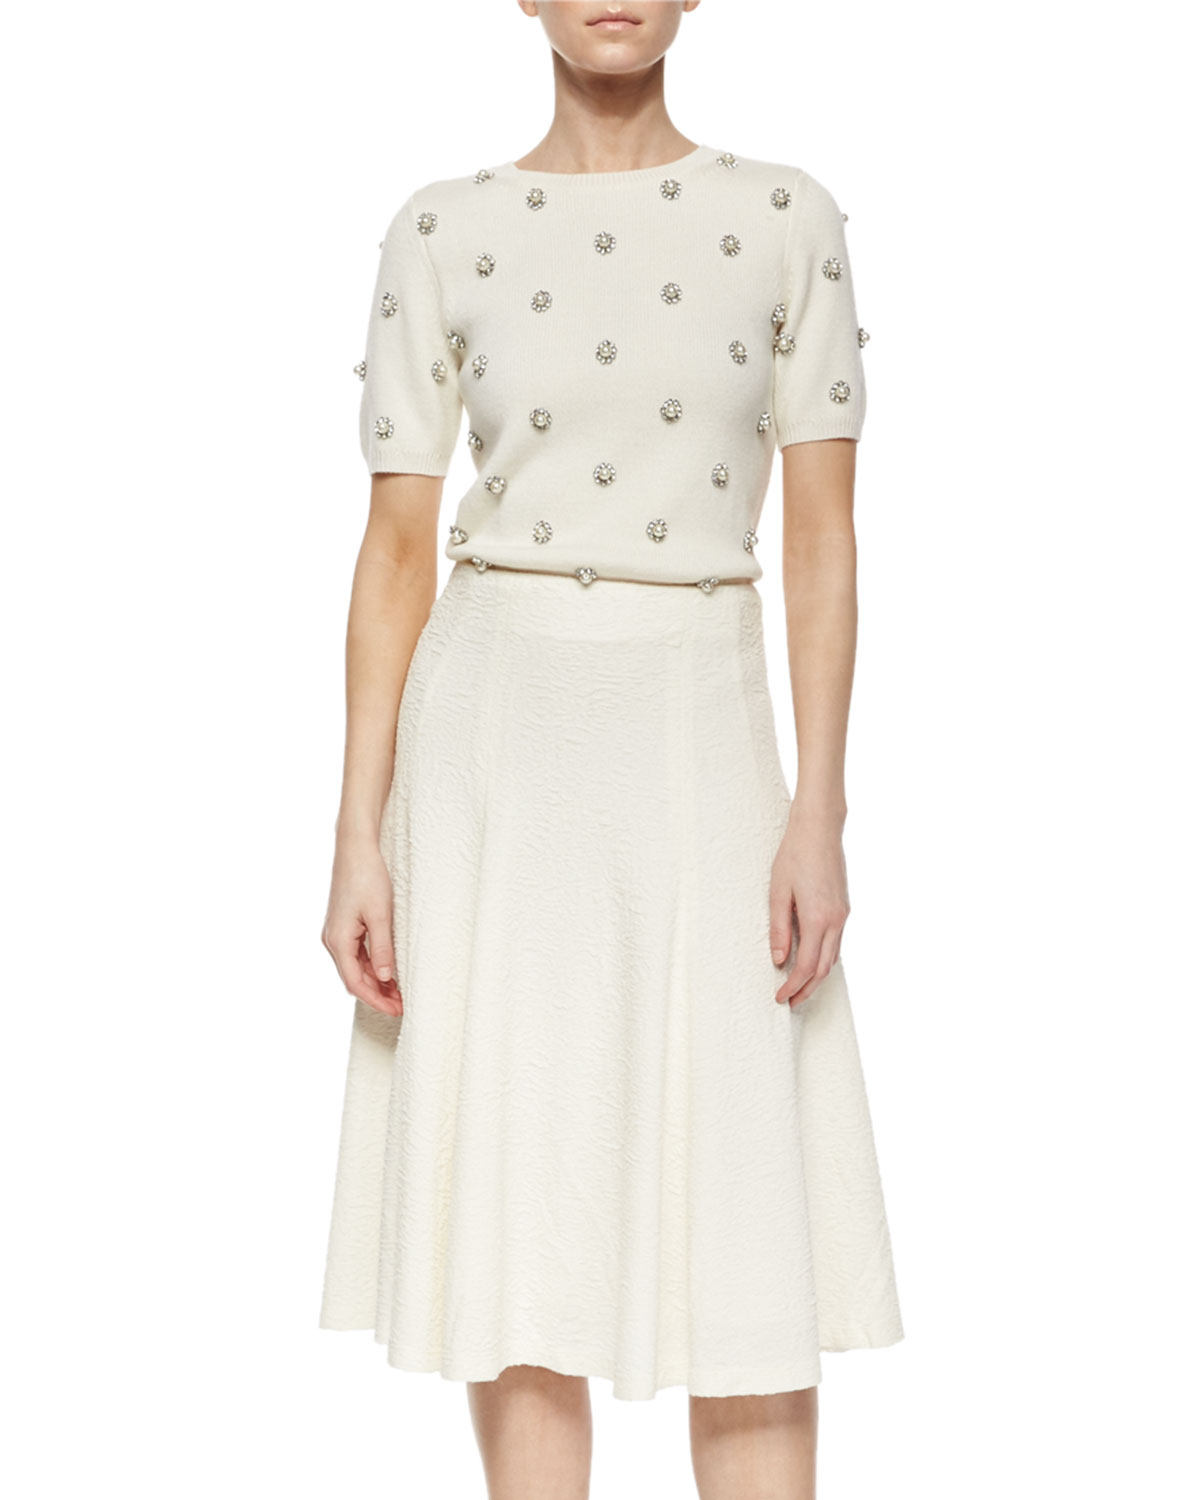 Alice   olivia Kimi Hammered Crepe A-line Skirt in Natural | Lyst